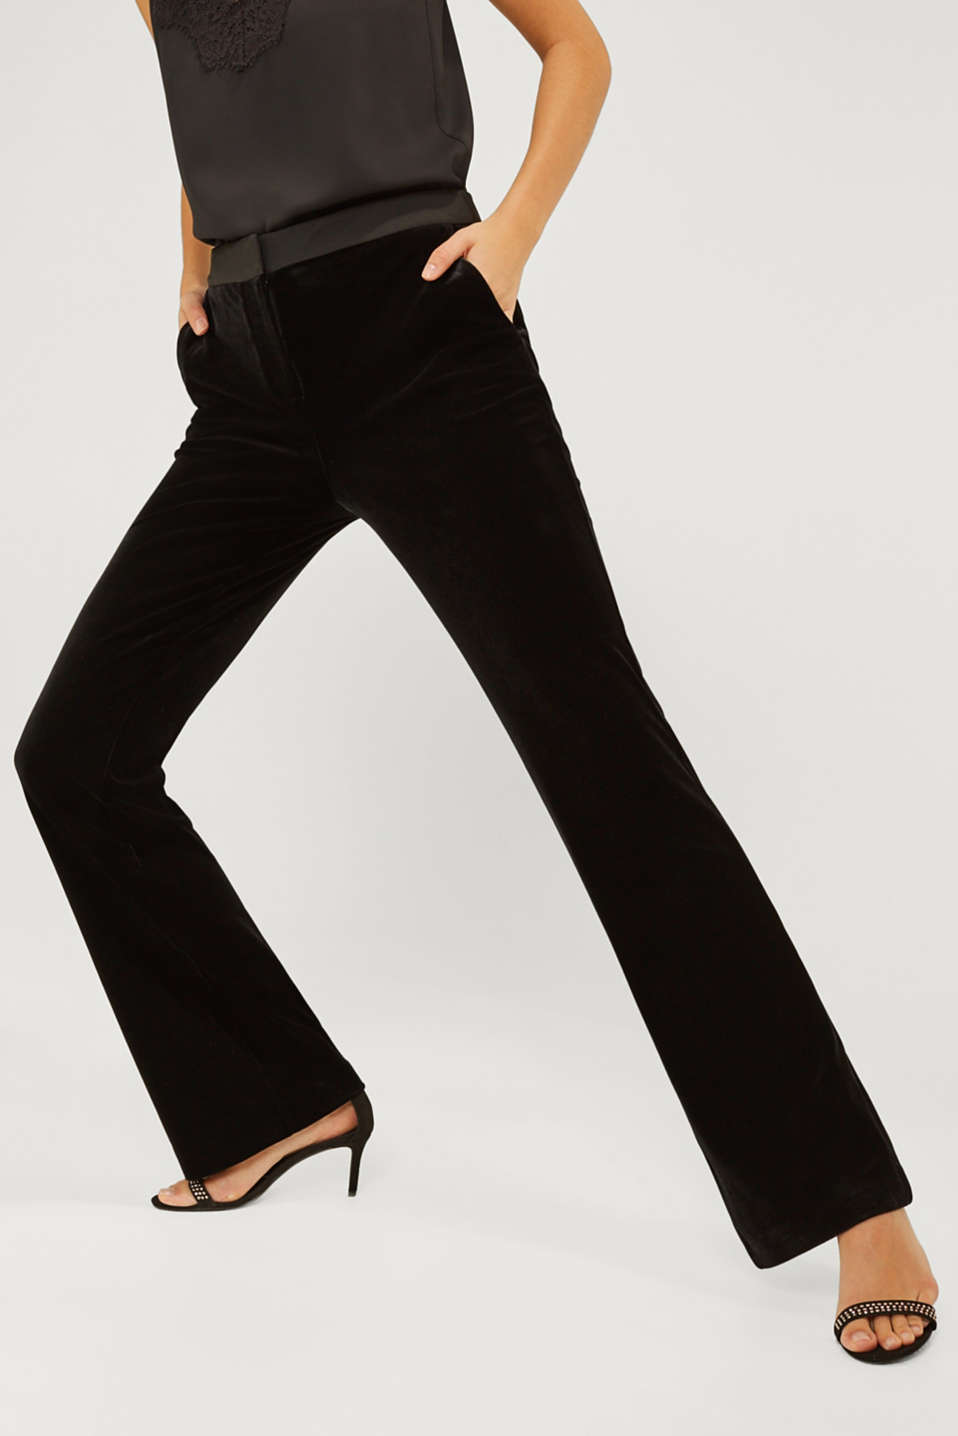 VELVET Mix + Match stretch trousers, BLACK, detail image number 5